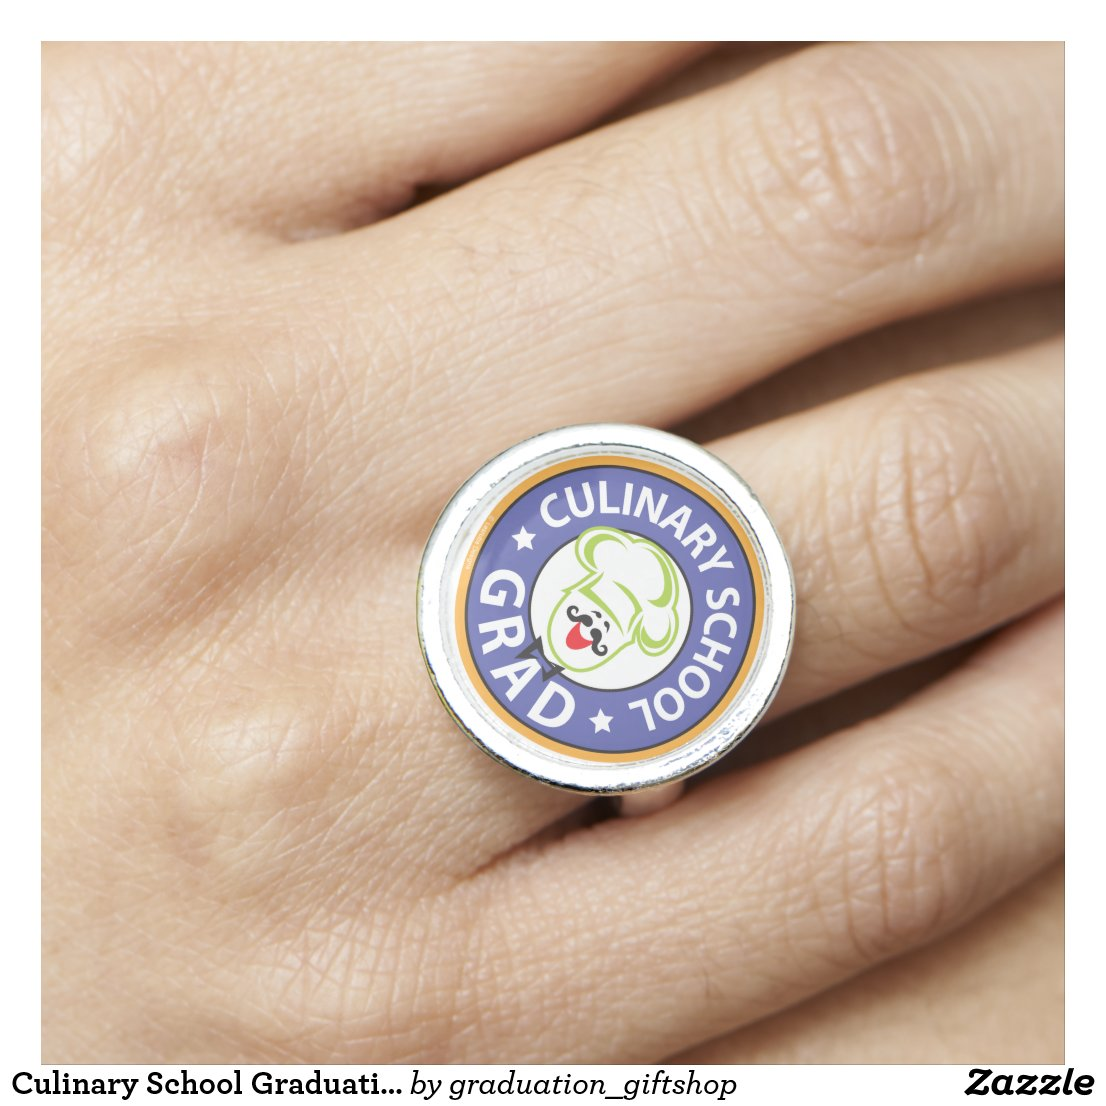 Culinary School Graduation Ring